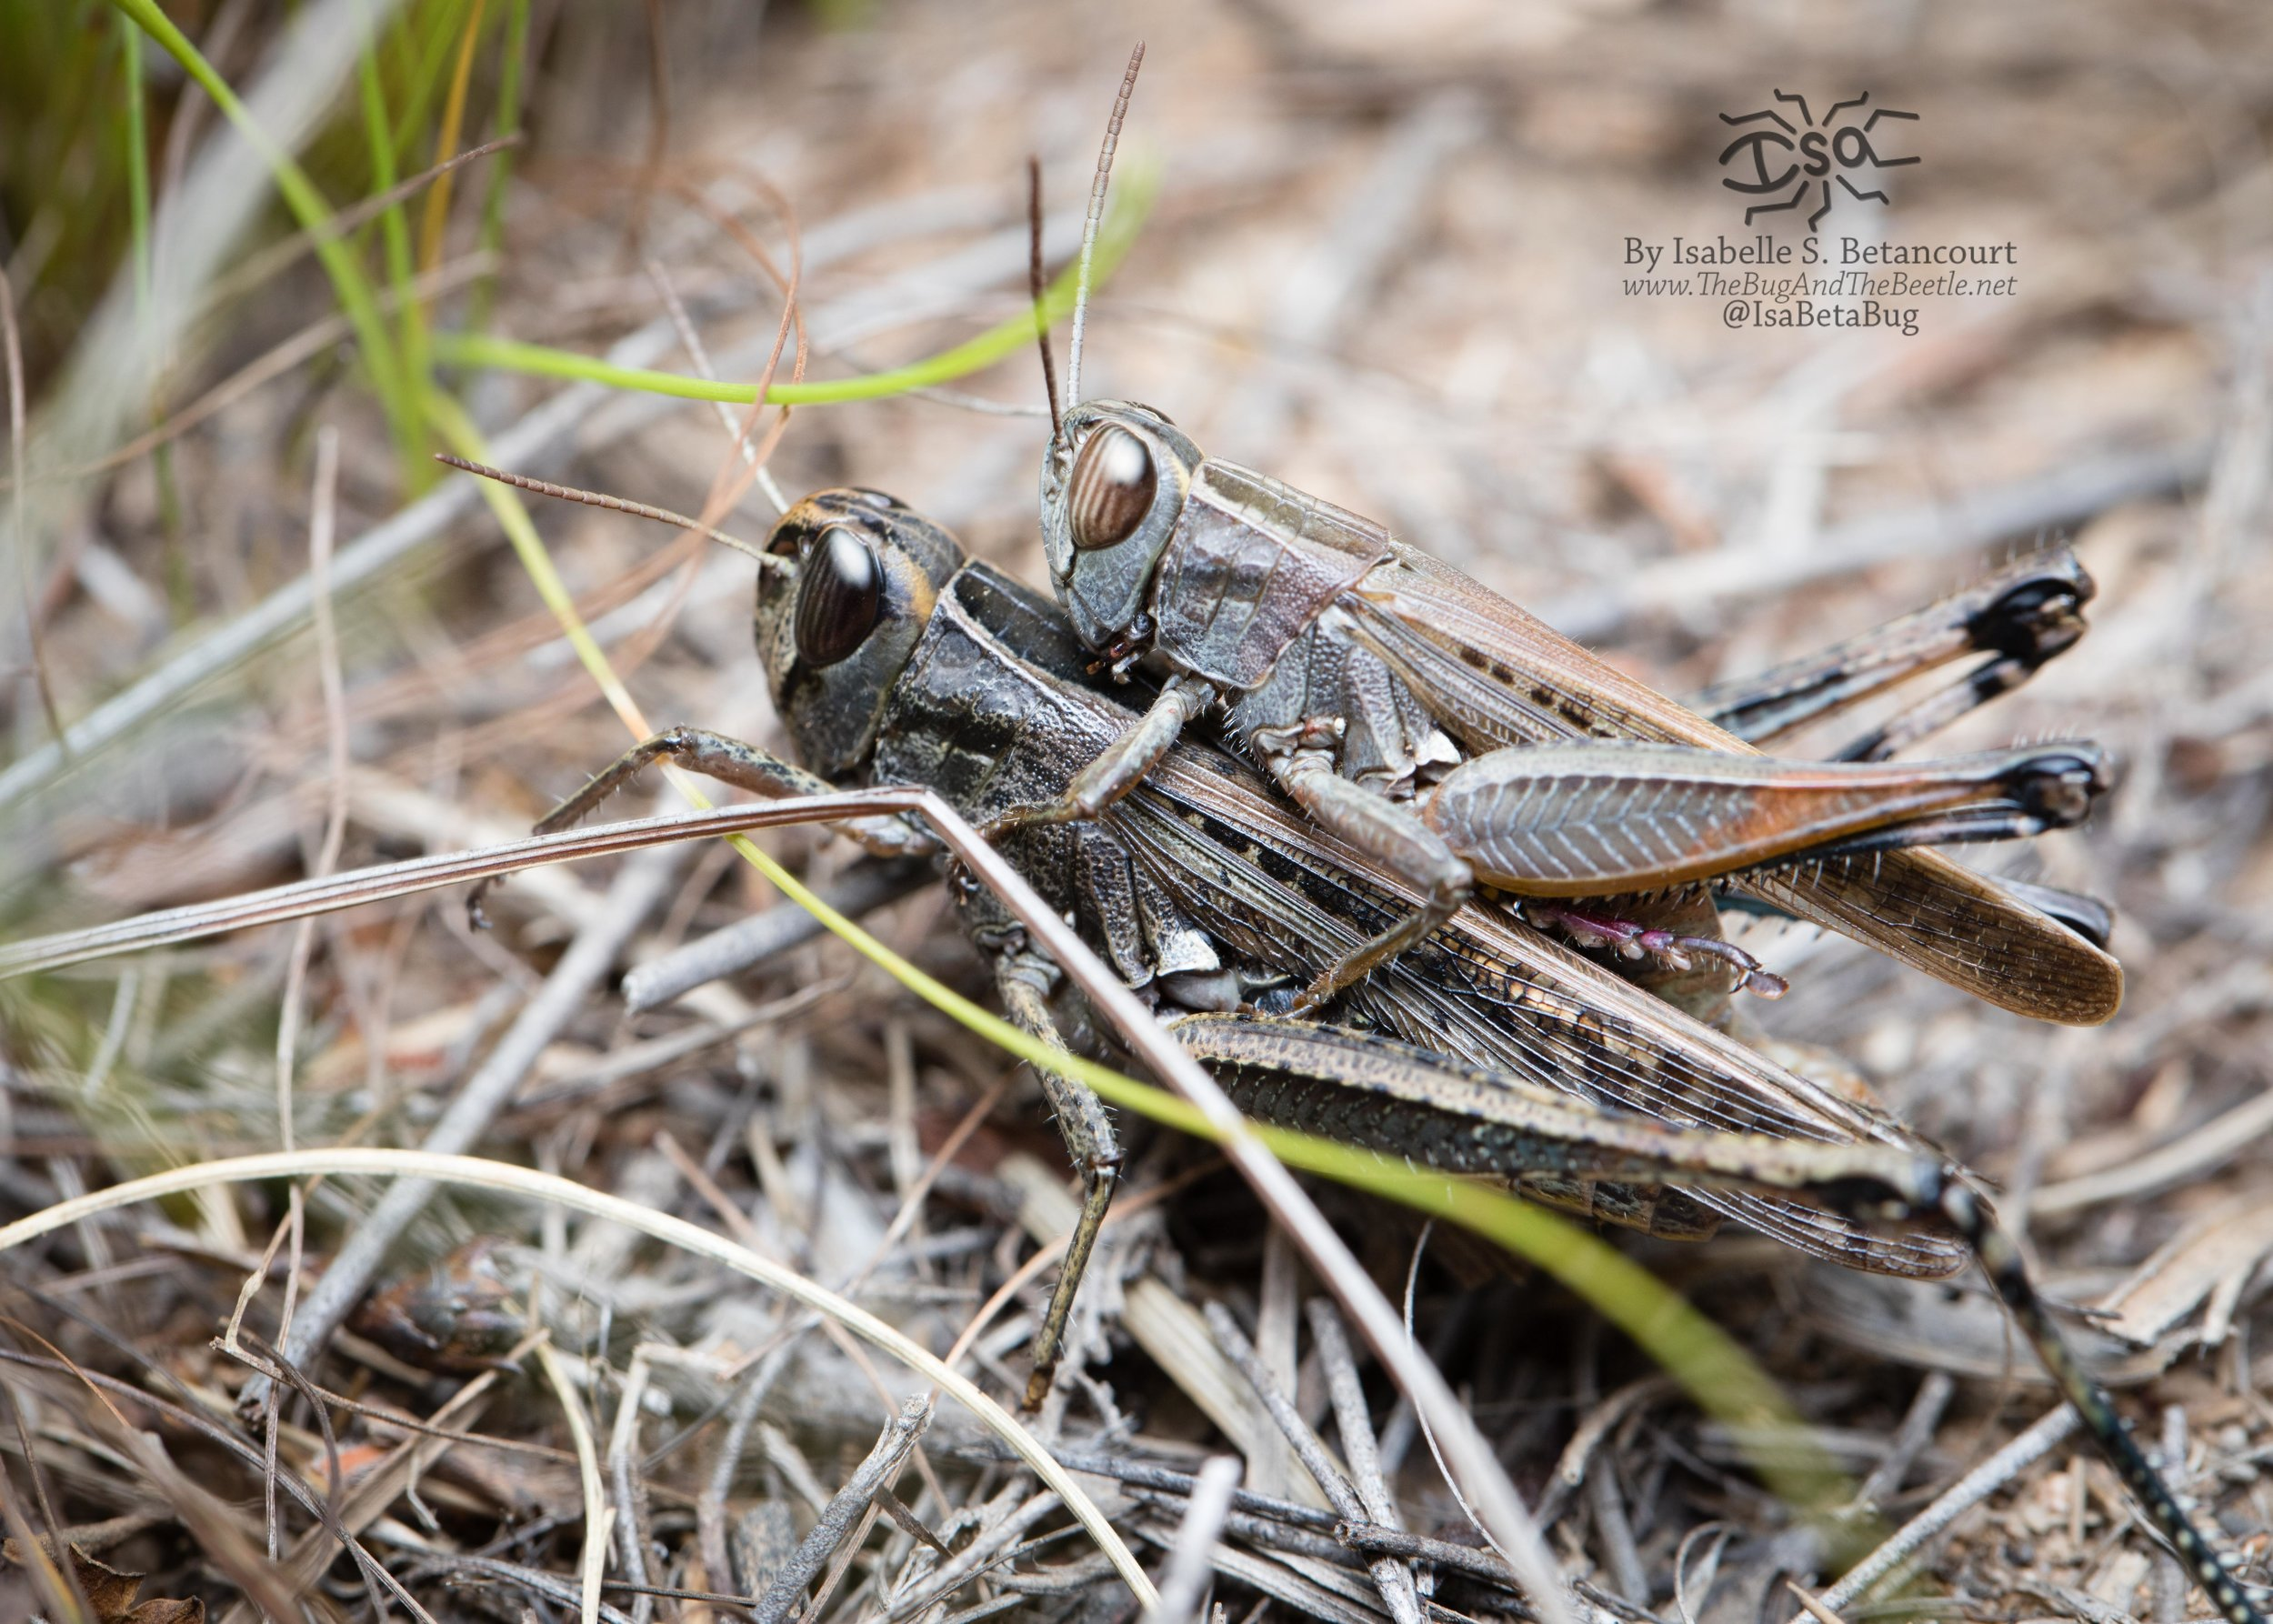 Mating grasshoppers on the side of the Stellenbosch trail. There were two other grasshopper couples right next to these two!